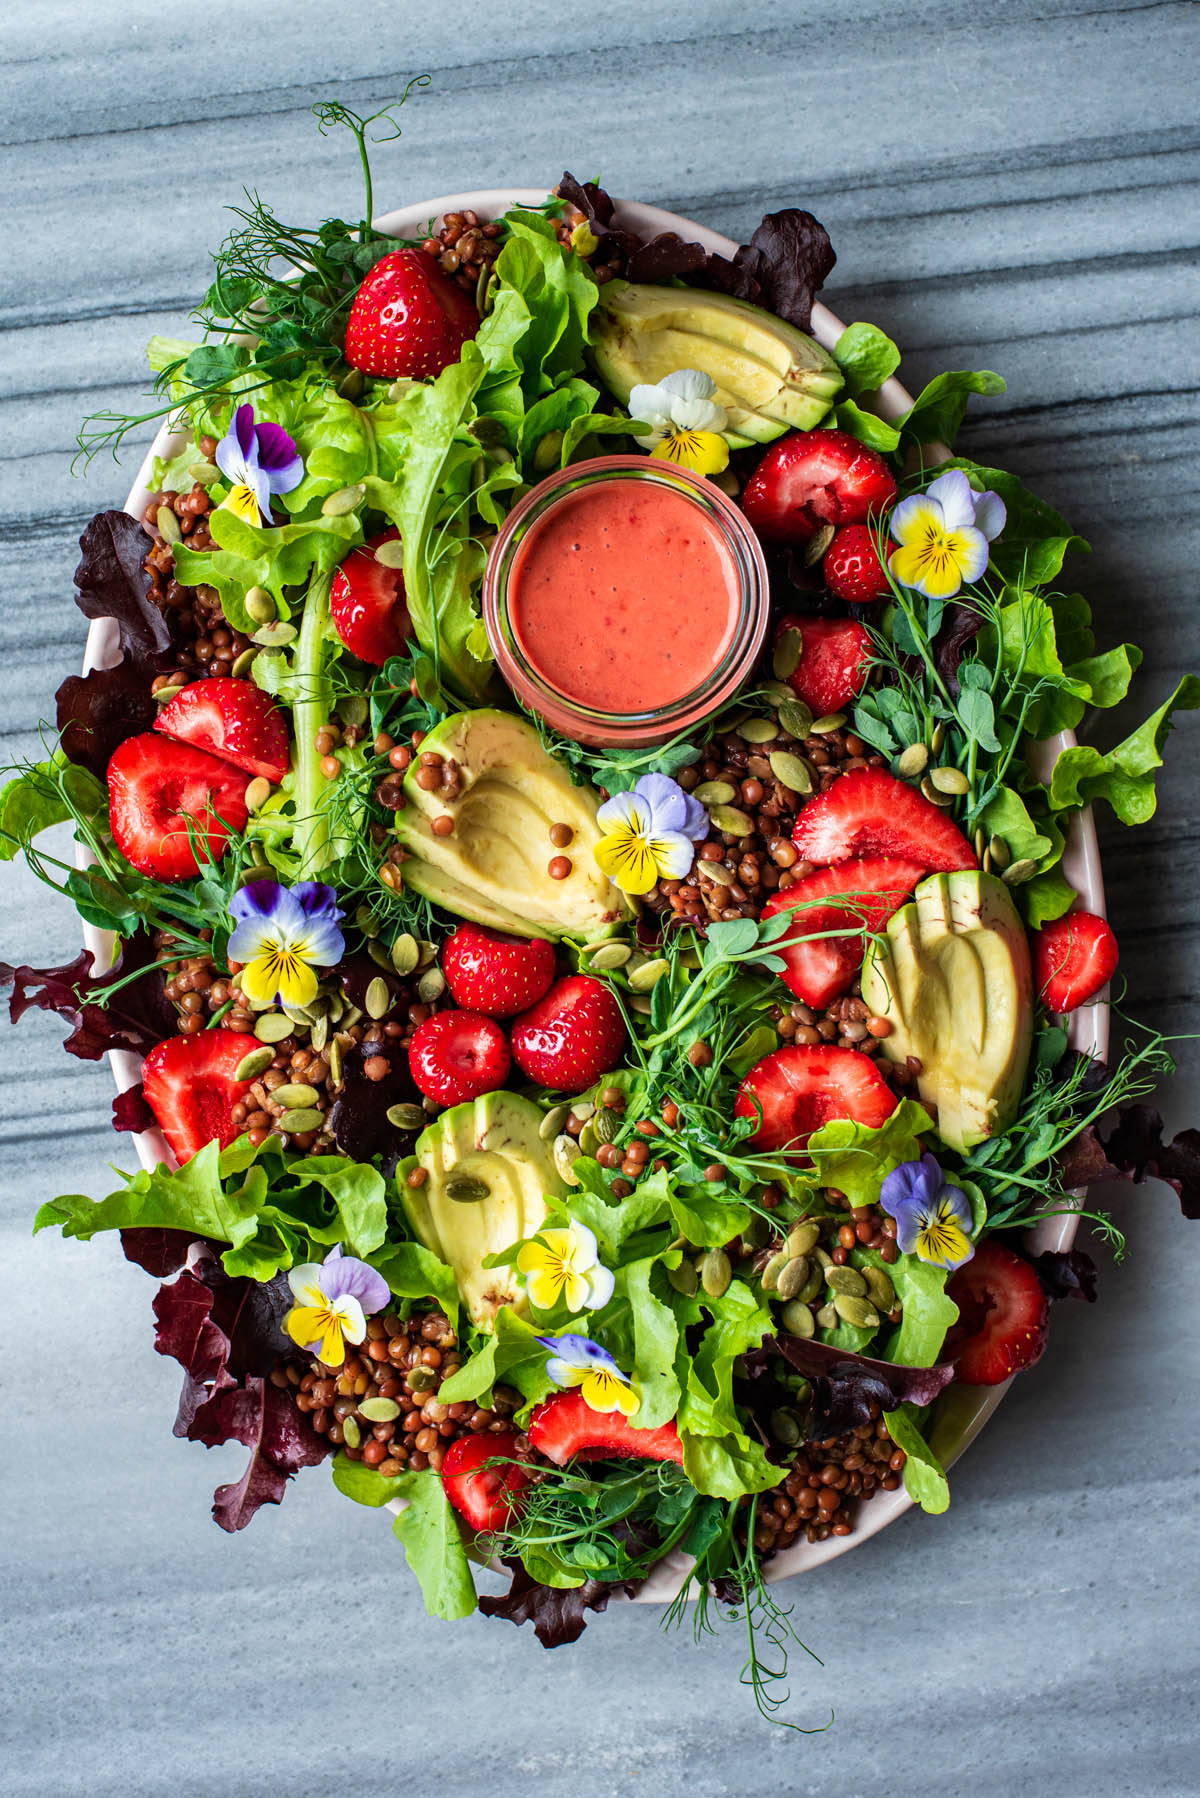 Strawberry salad with edible flowers, avocado, and lentils on a large platter.